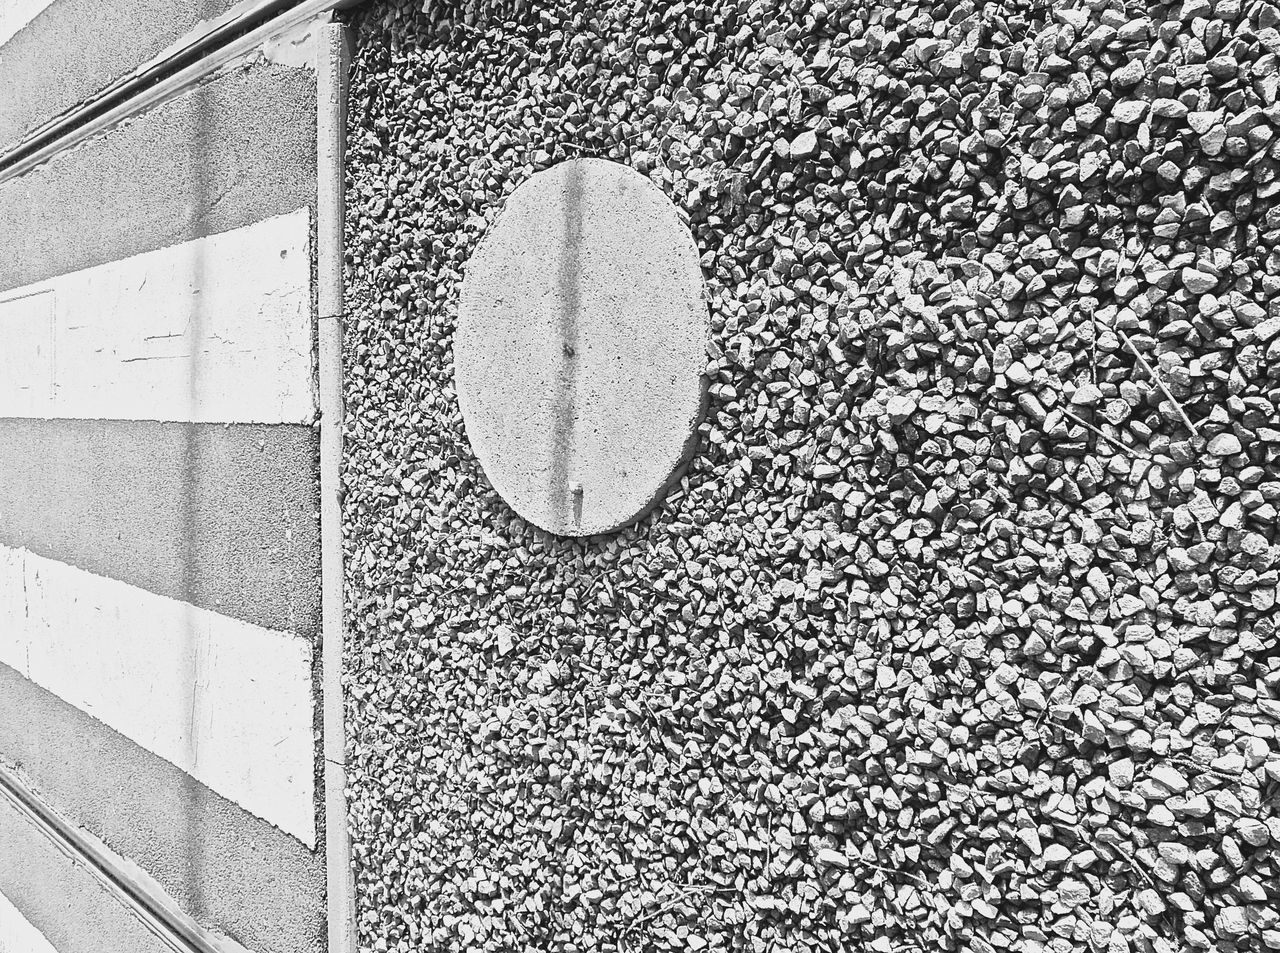 Angles And Lines Architecture Black And White Close-up Day Nature No People Outdoors Pebble Perspective Railtrack Shapes And Lines Side View Textured  Zebra Crossing